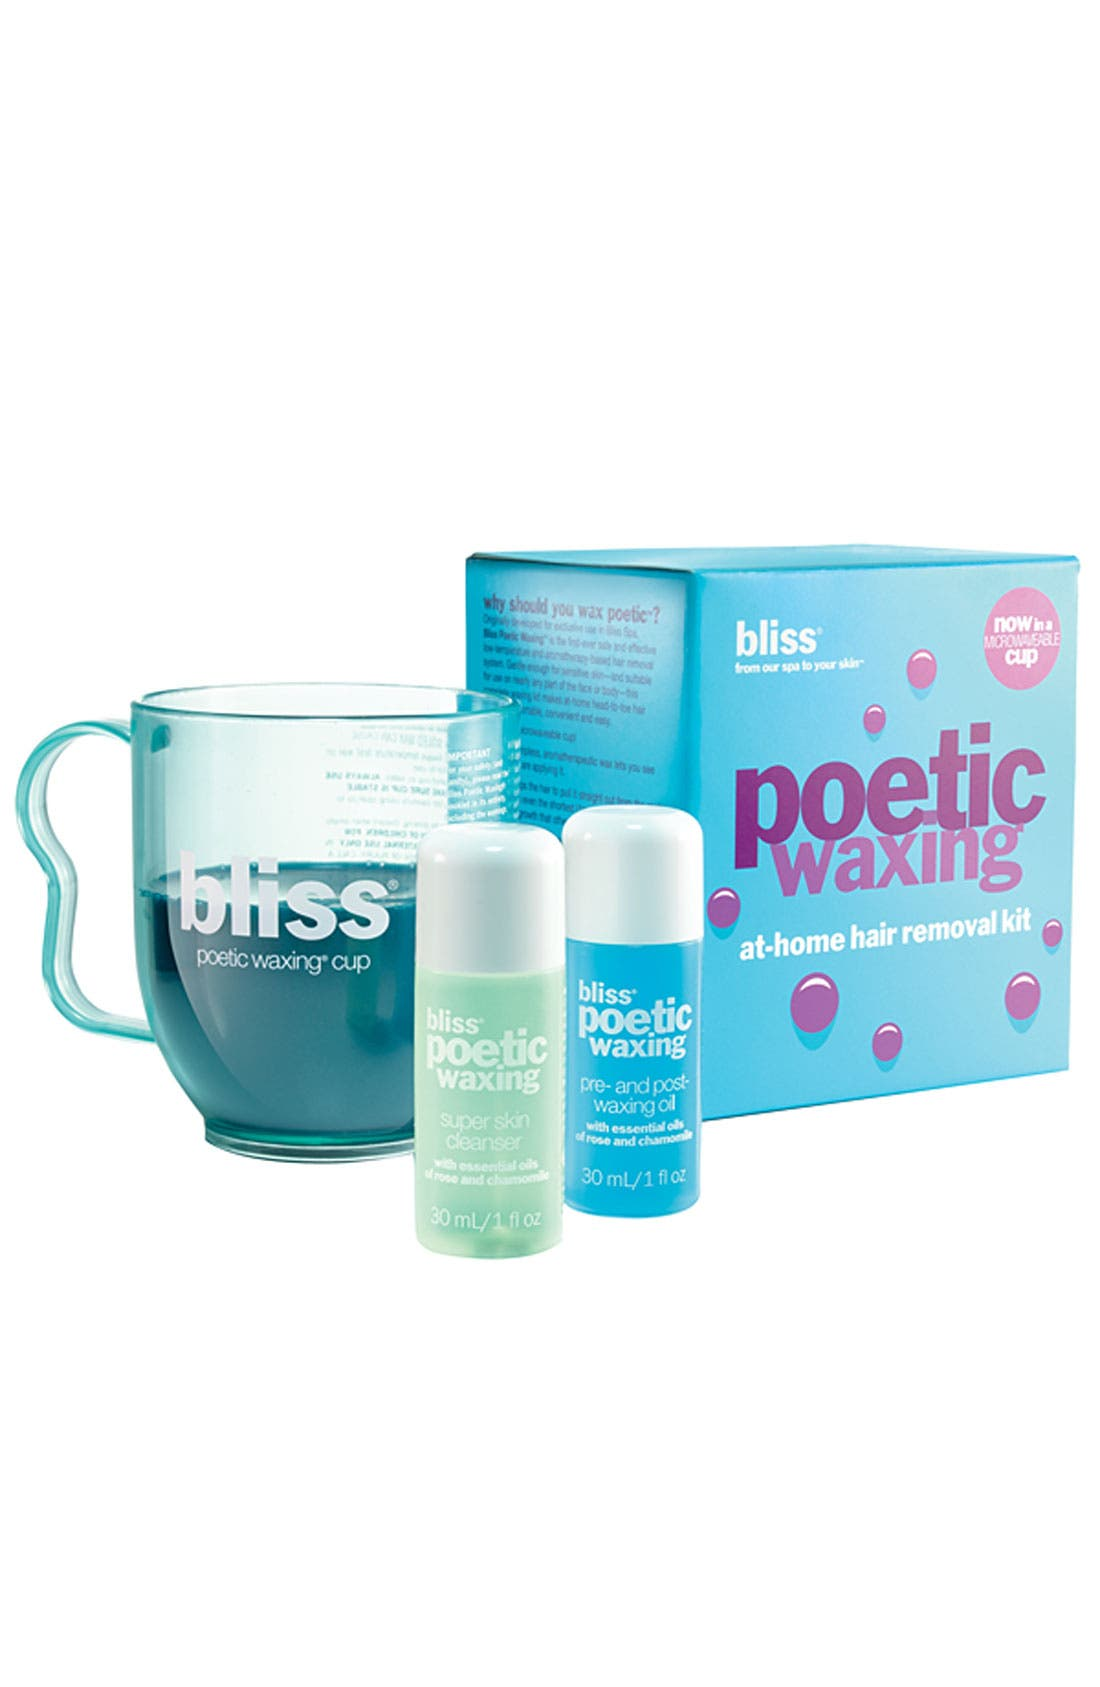 Alternate Image 1 Selected - bliss® 'Poetic Waxing' At-Home Hair Removal Kit